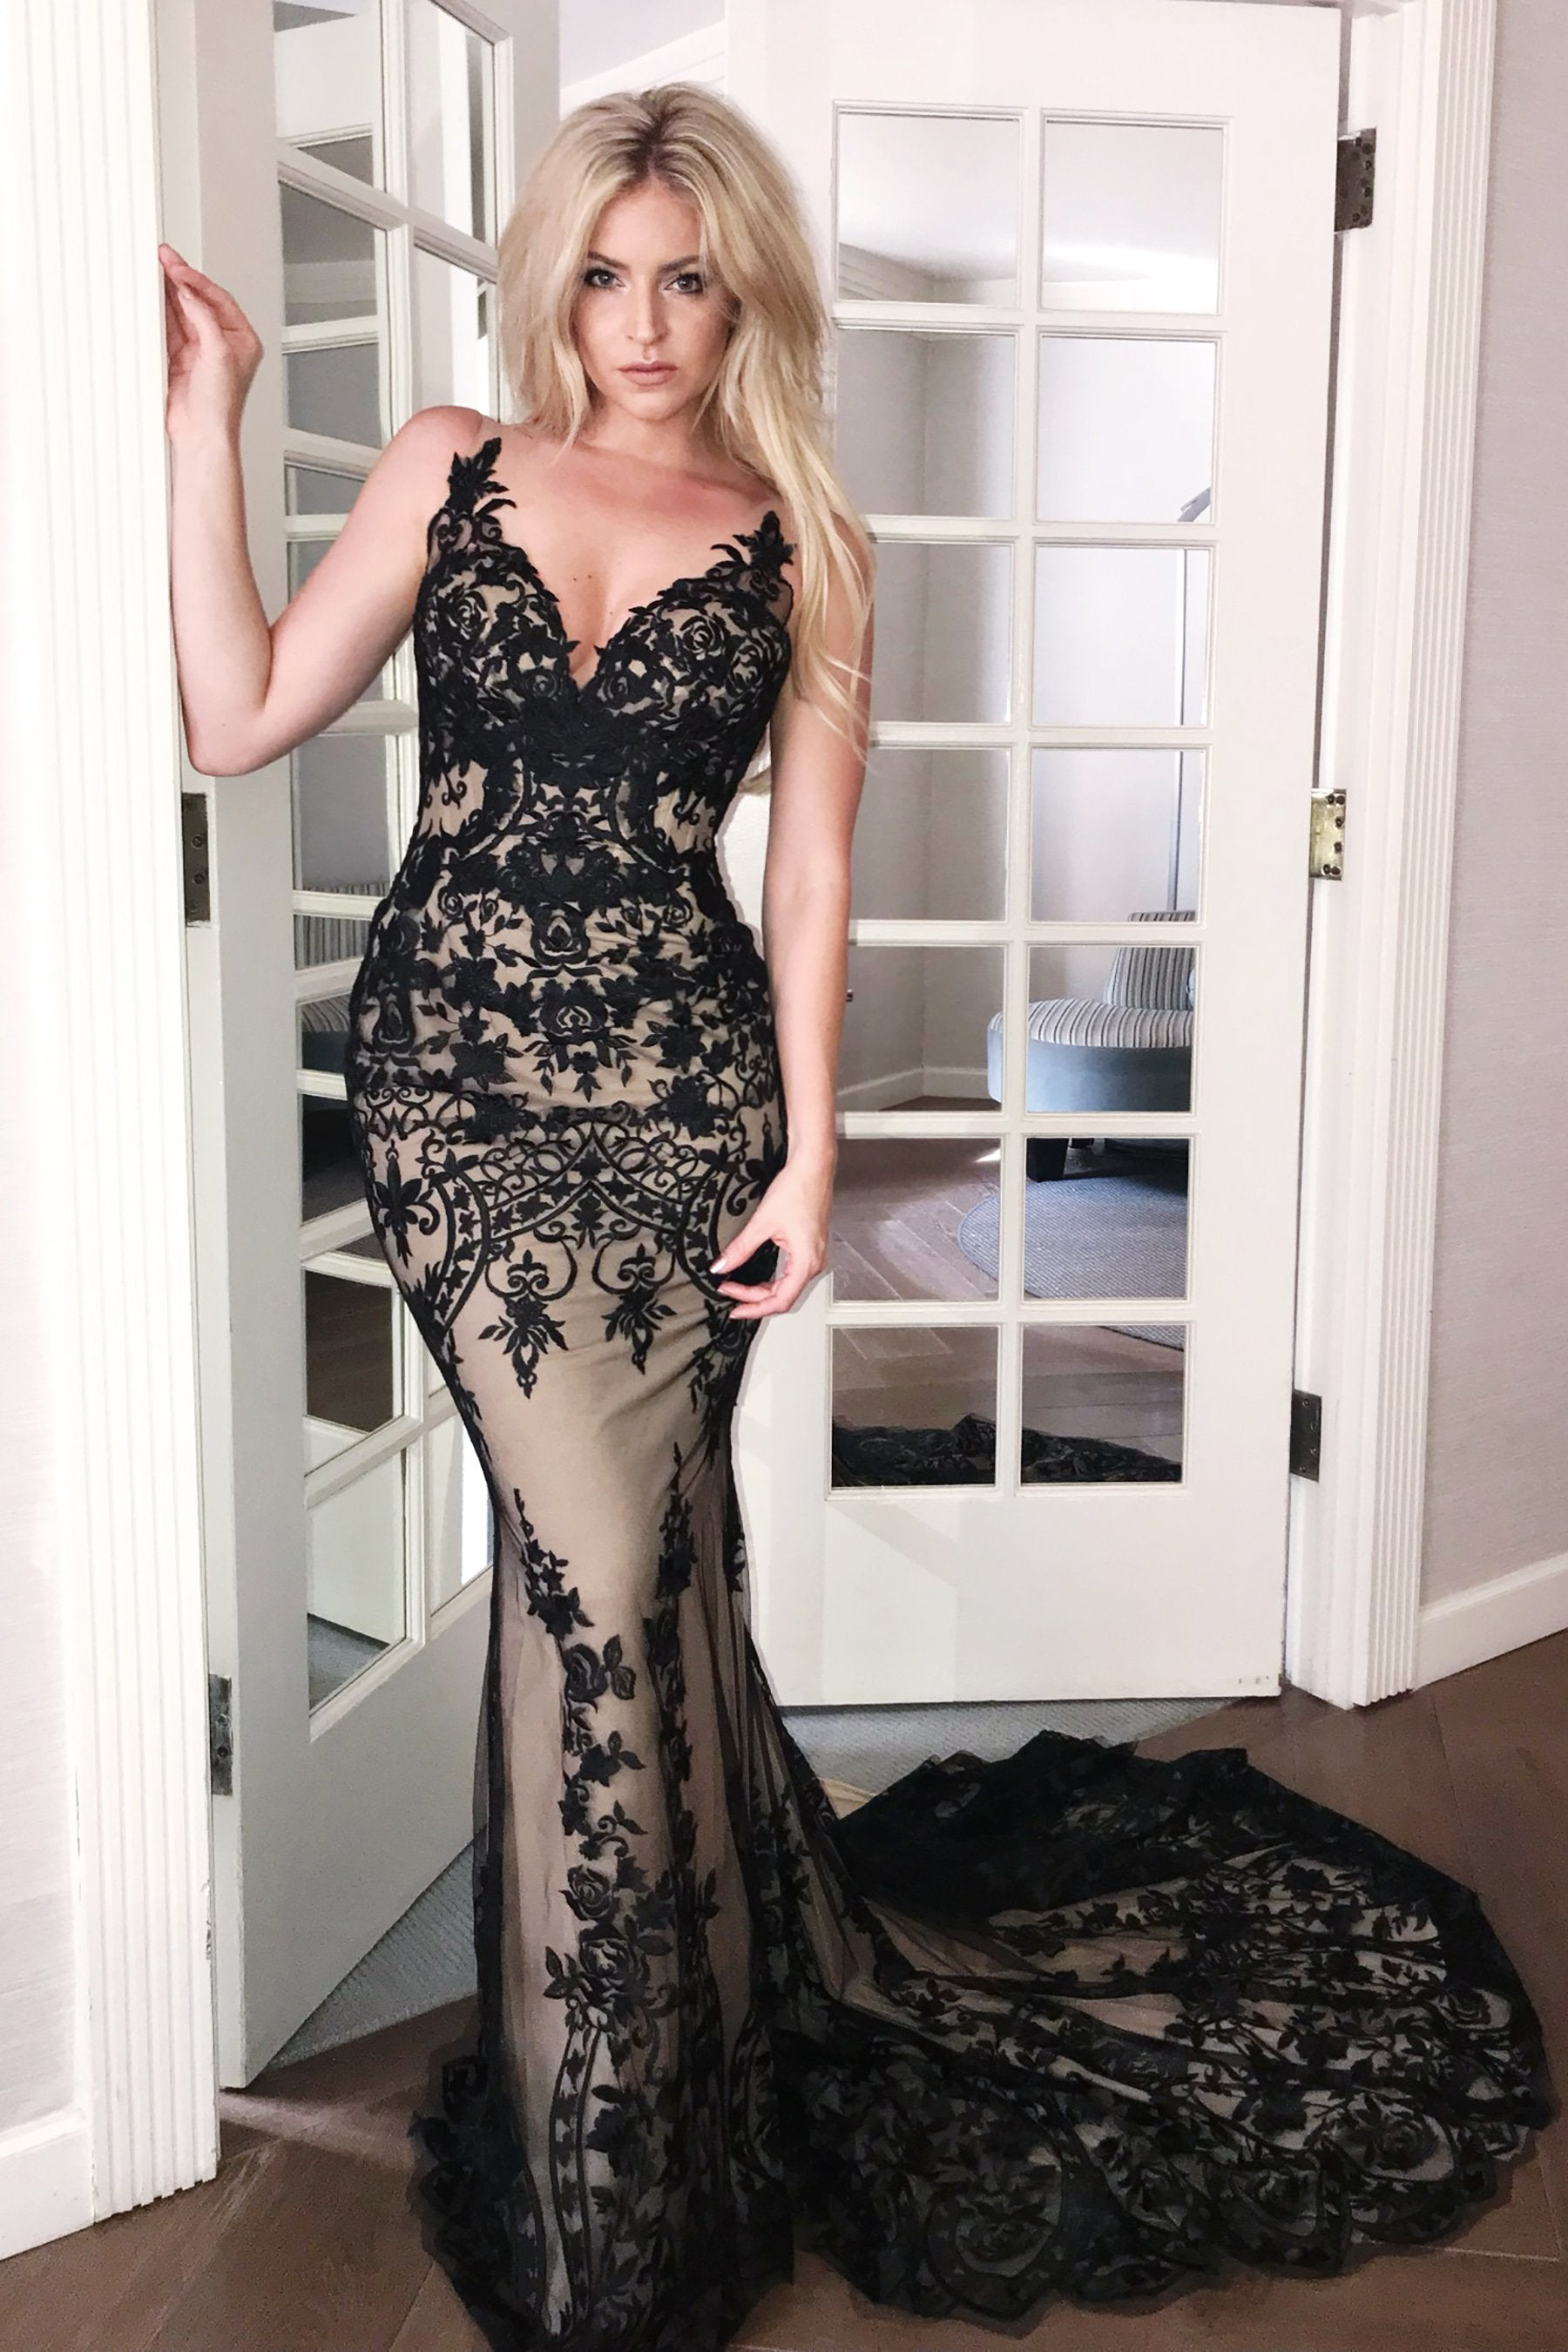 rene atelier Hampton black lace evening dress